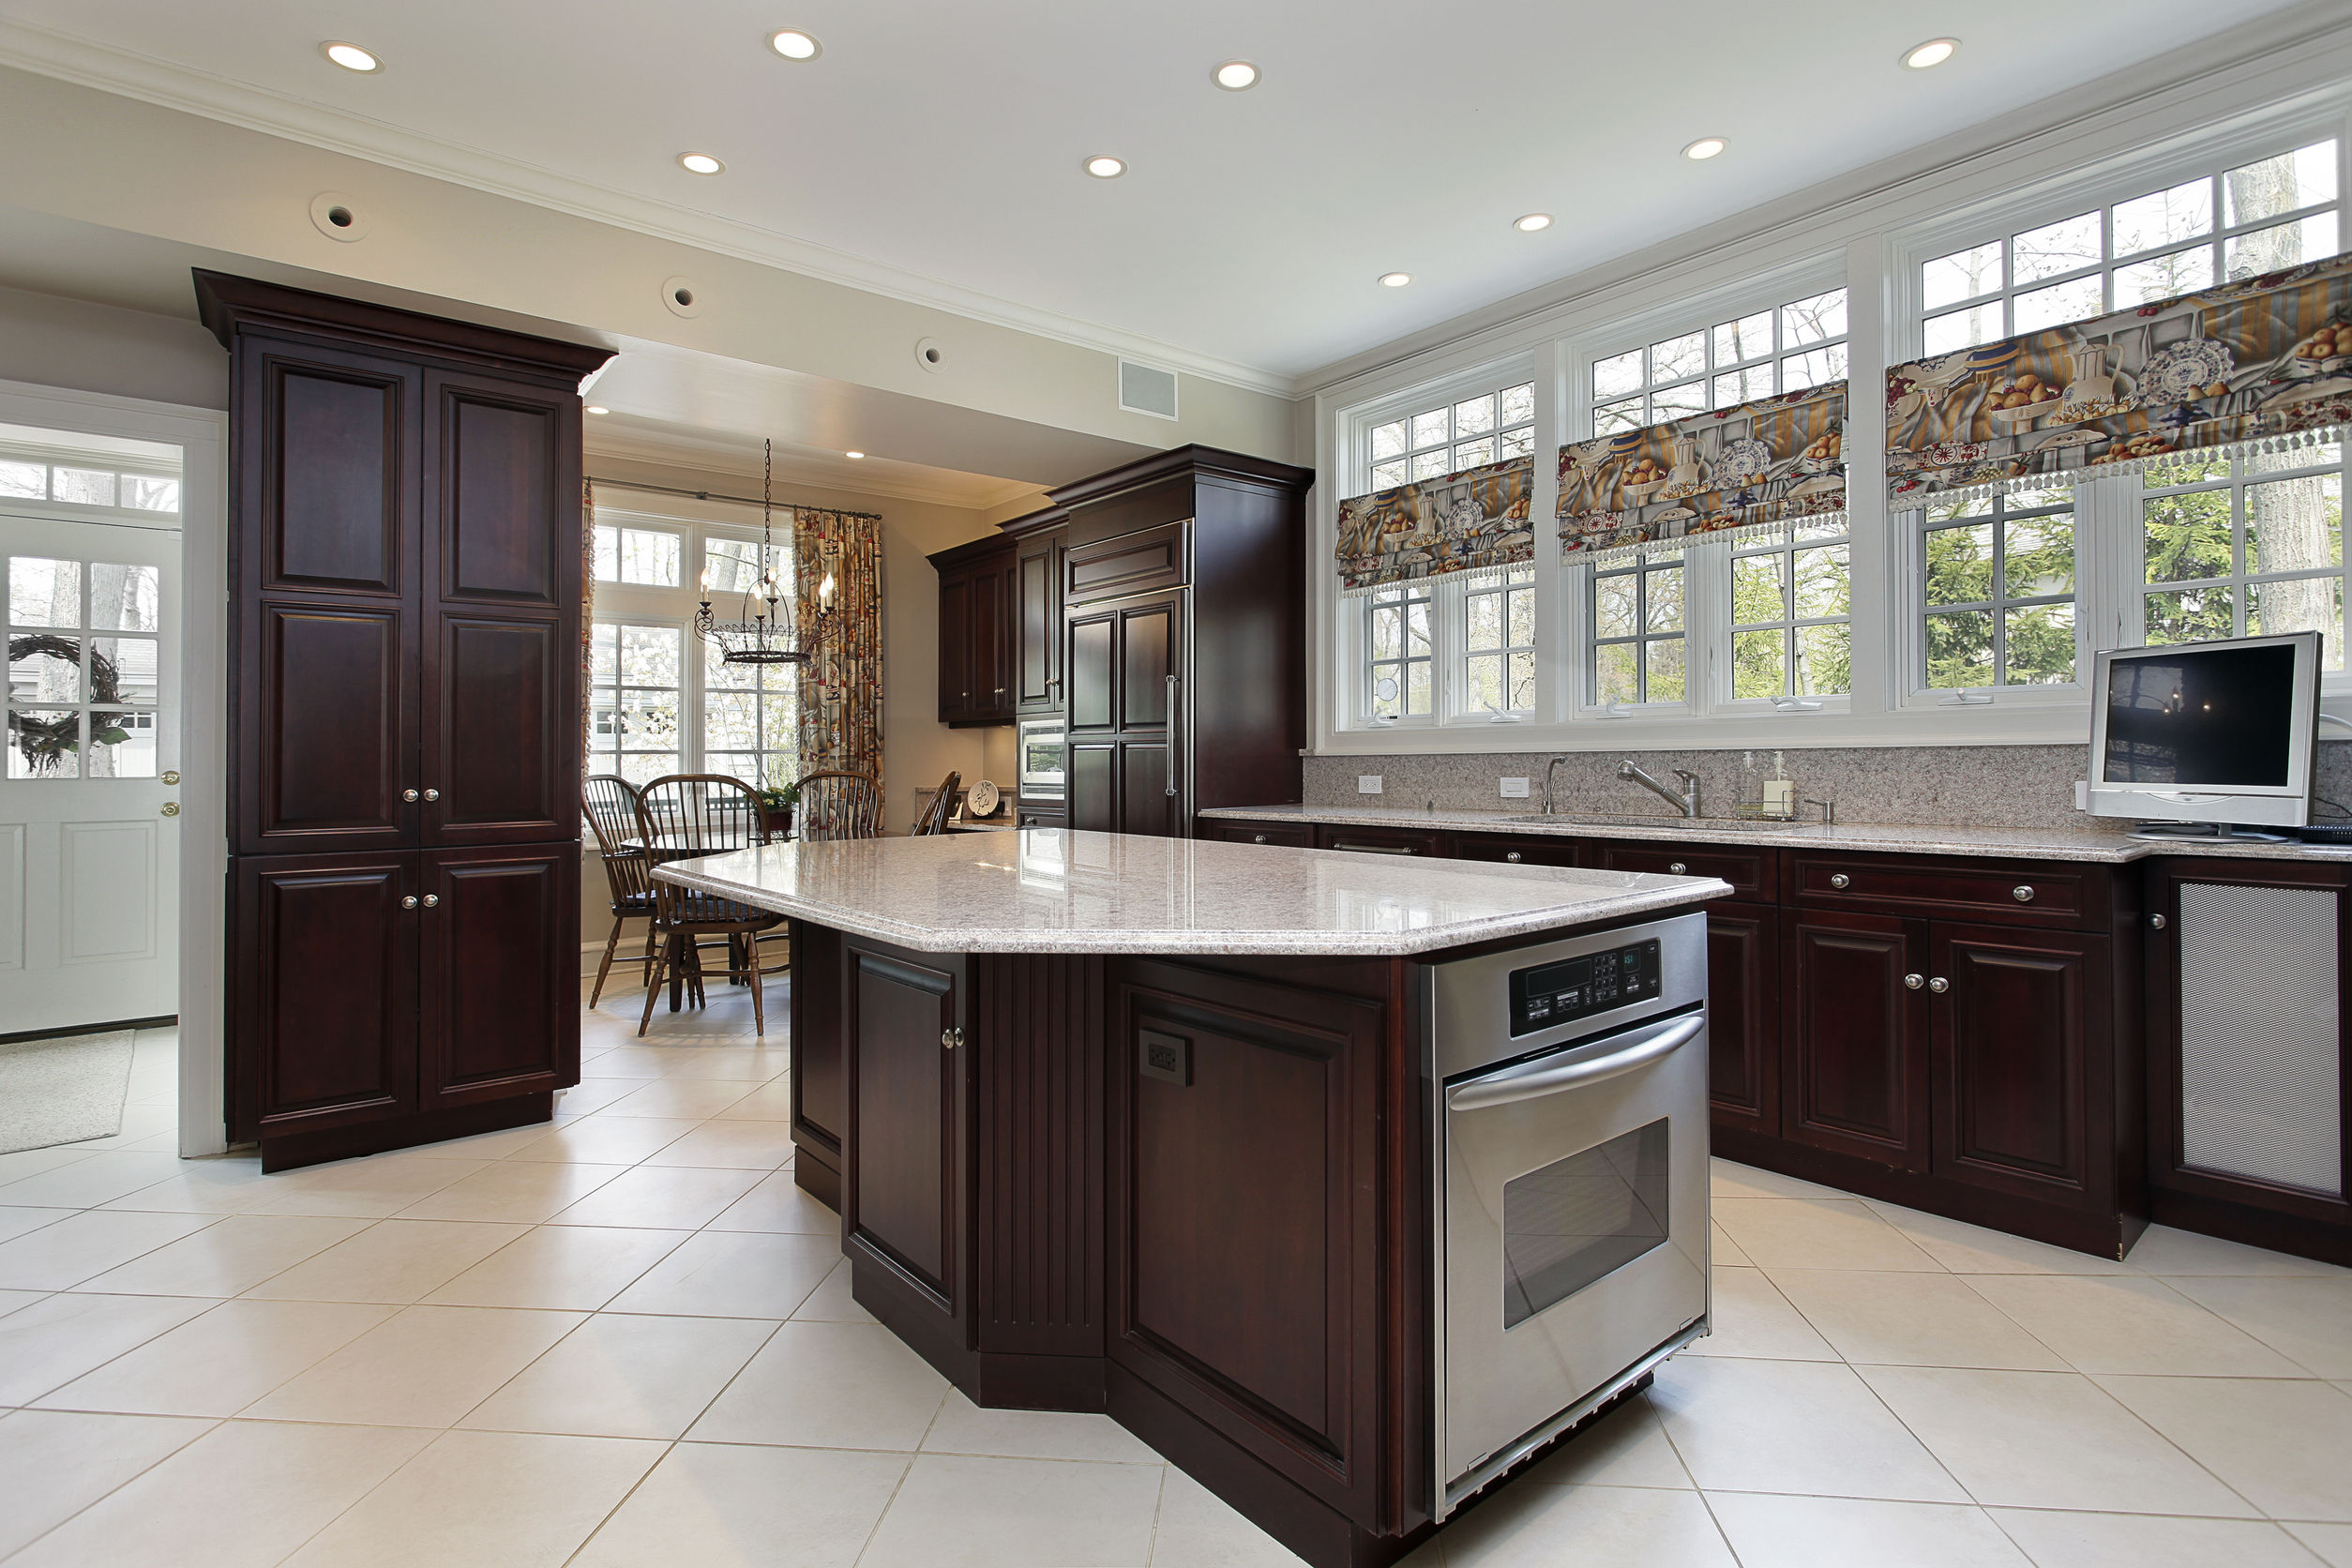 kitchen island, cooking area